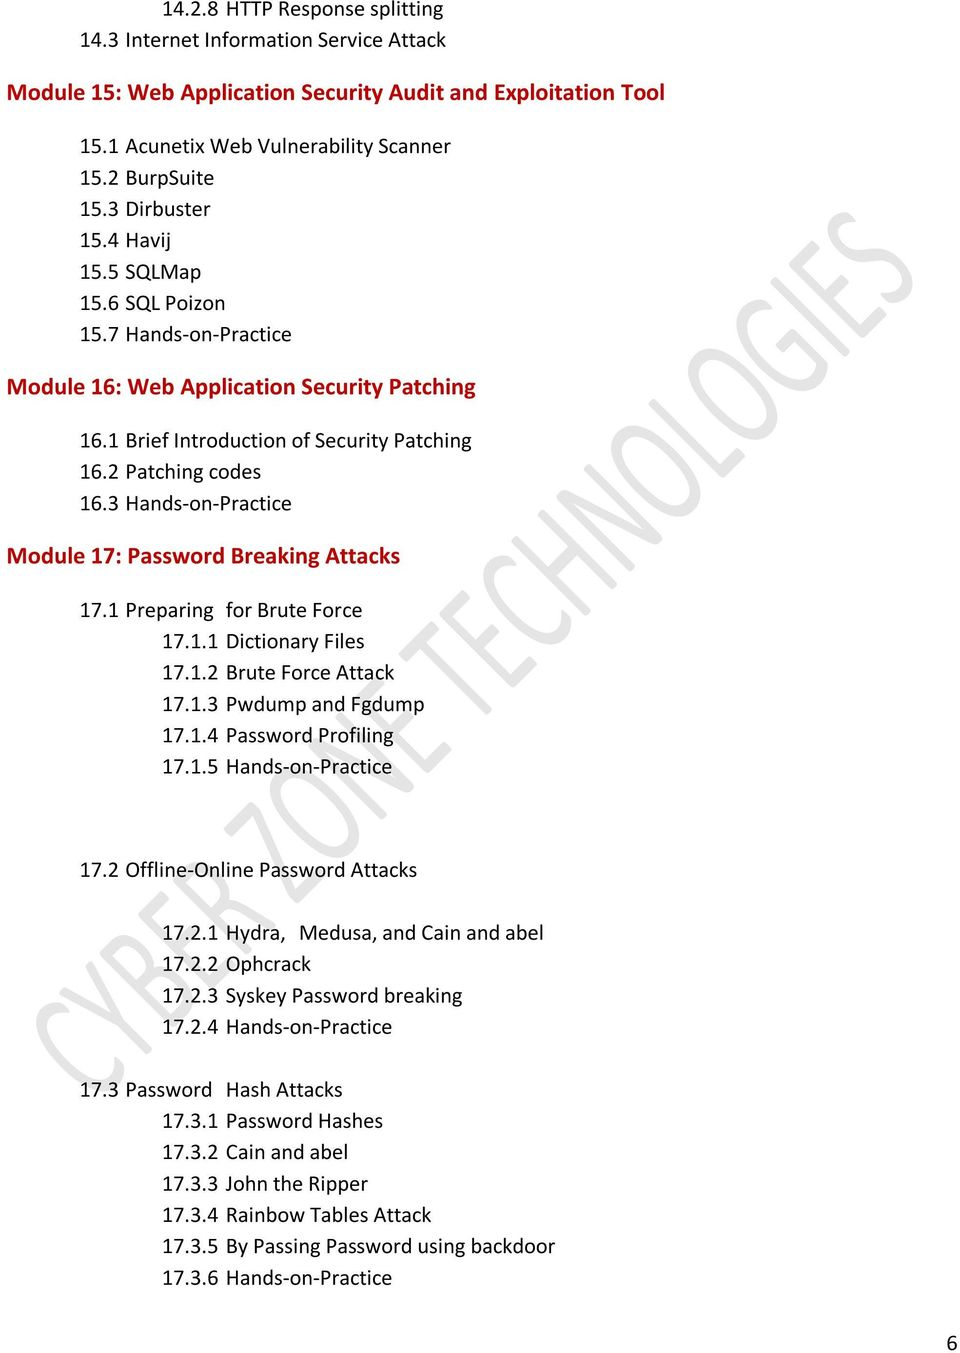 3 Hands-on-Practice Module 17: Password Breaking Attacks 17.1 Preparing for Brute Force 17.1.1 Dictionary Files 17.1.2 Brute Force Attack 17.1.3 Pwdump and Fgdump 17.1.4 Password Profiling 17.1.5 Hands-on-Practice 17.